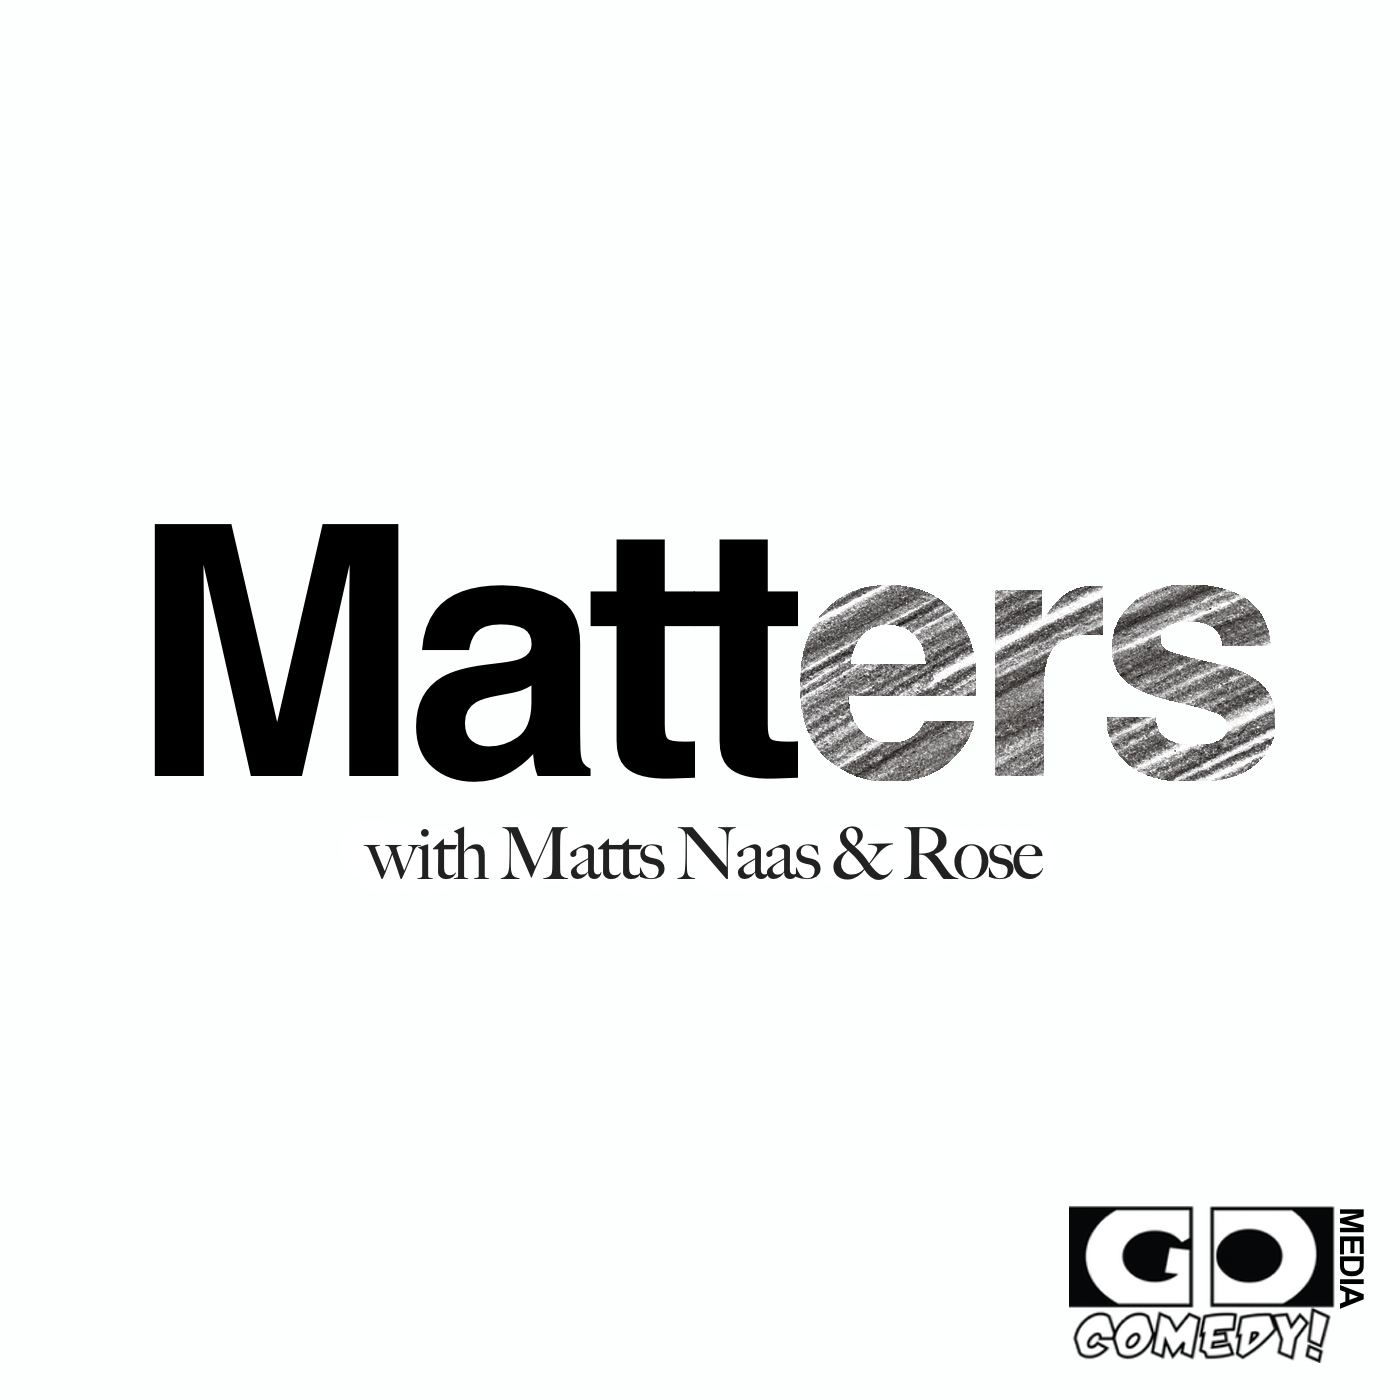 Matters with Matts Naas & Rose